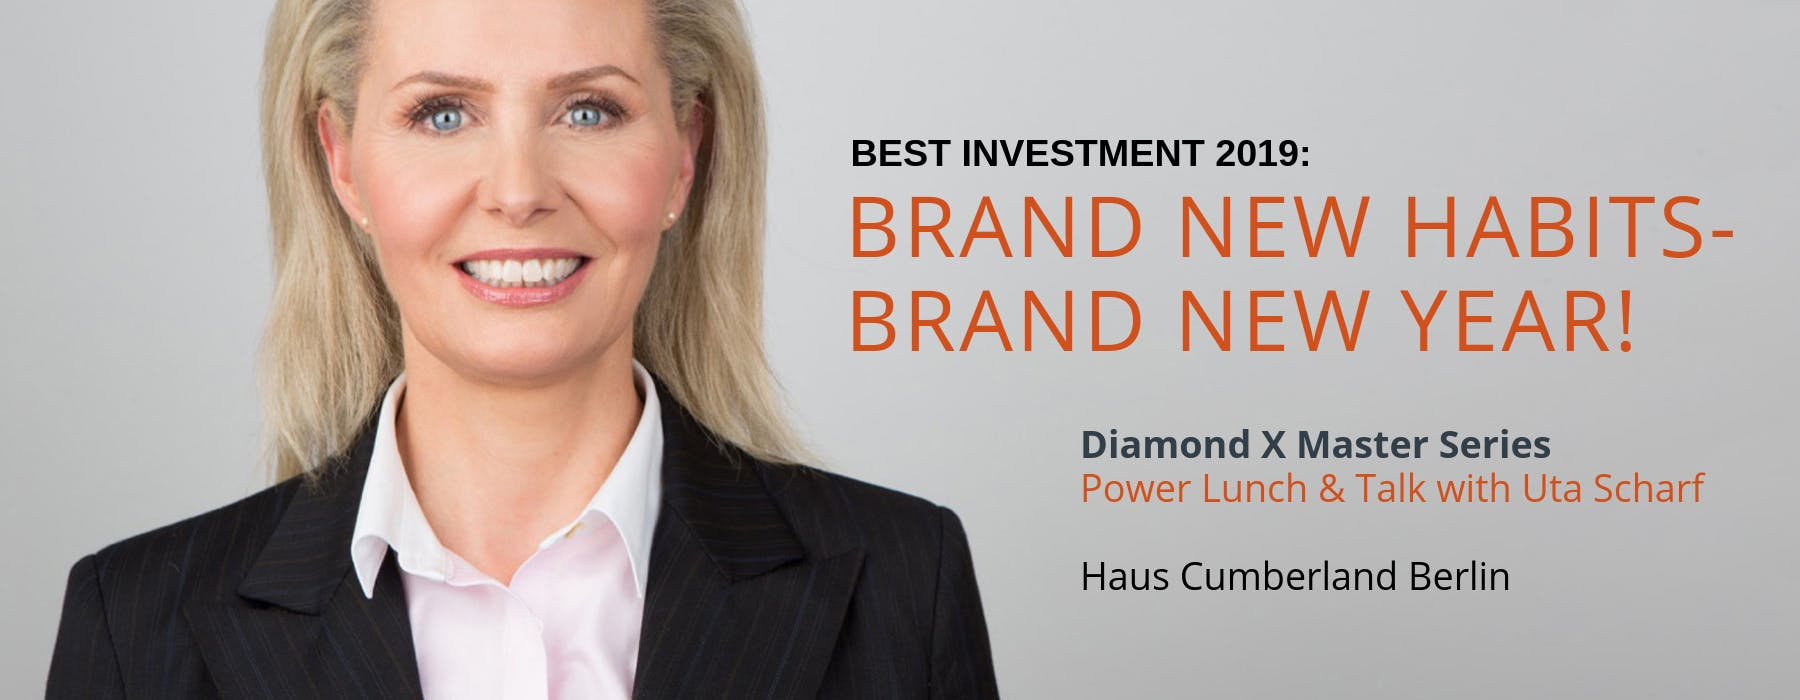 Best Investment 2019: Brand New Habits for a Brand New Year!